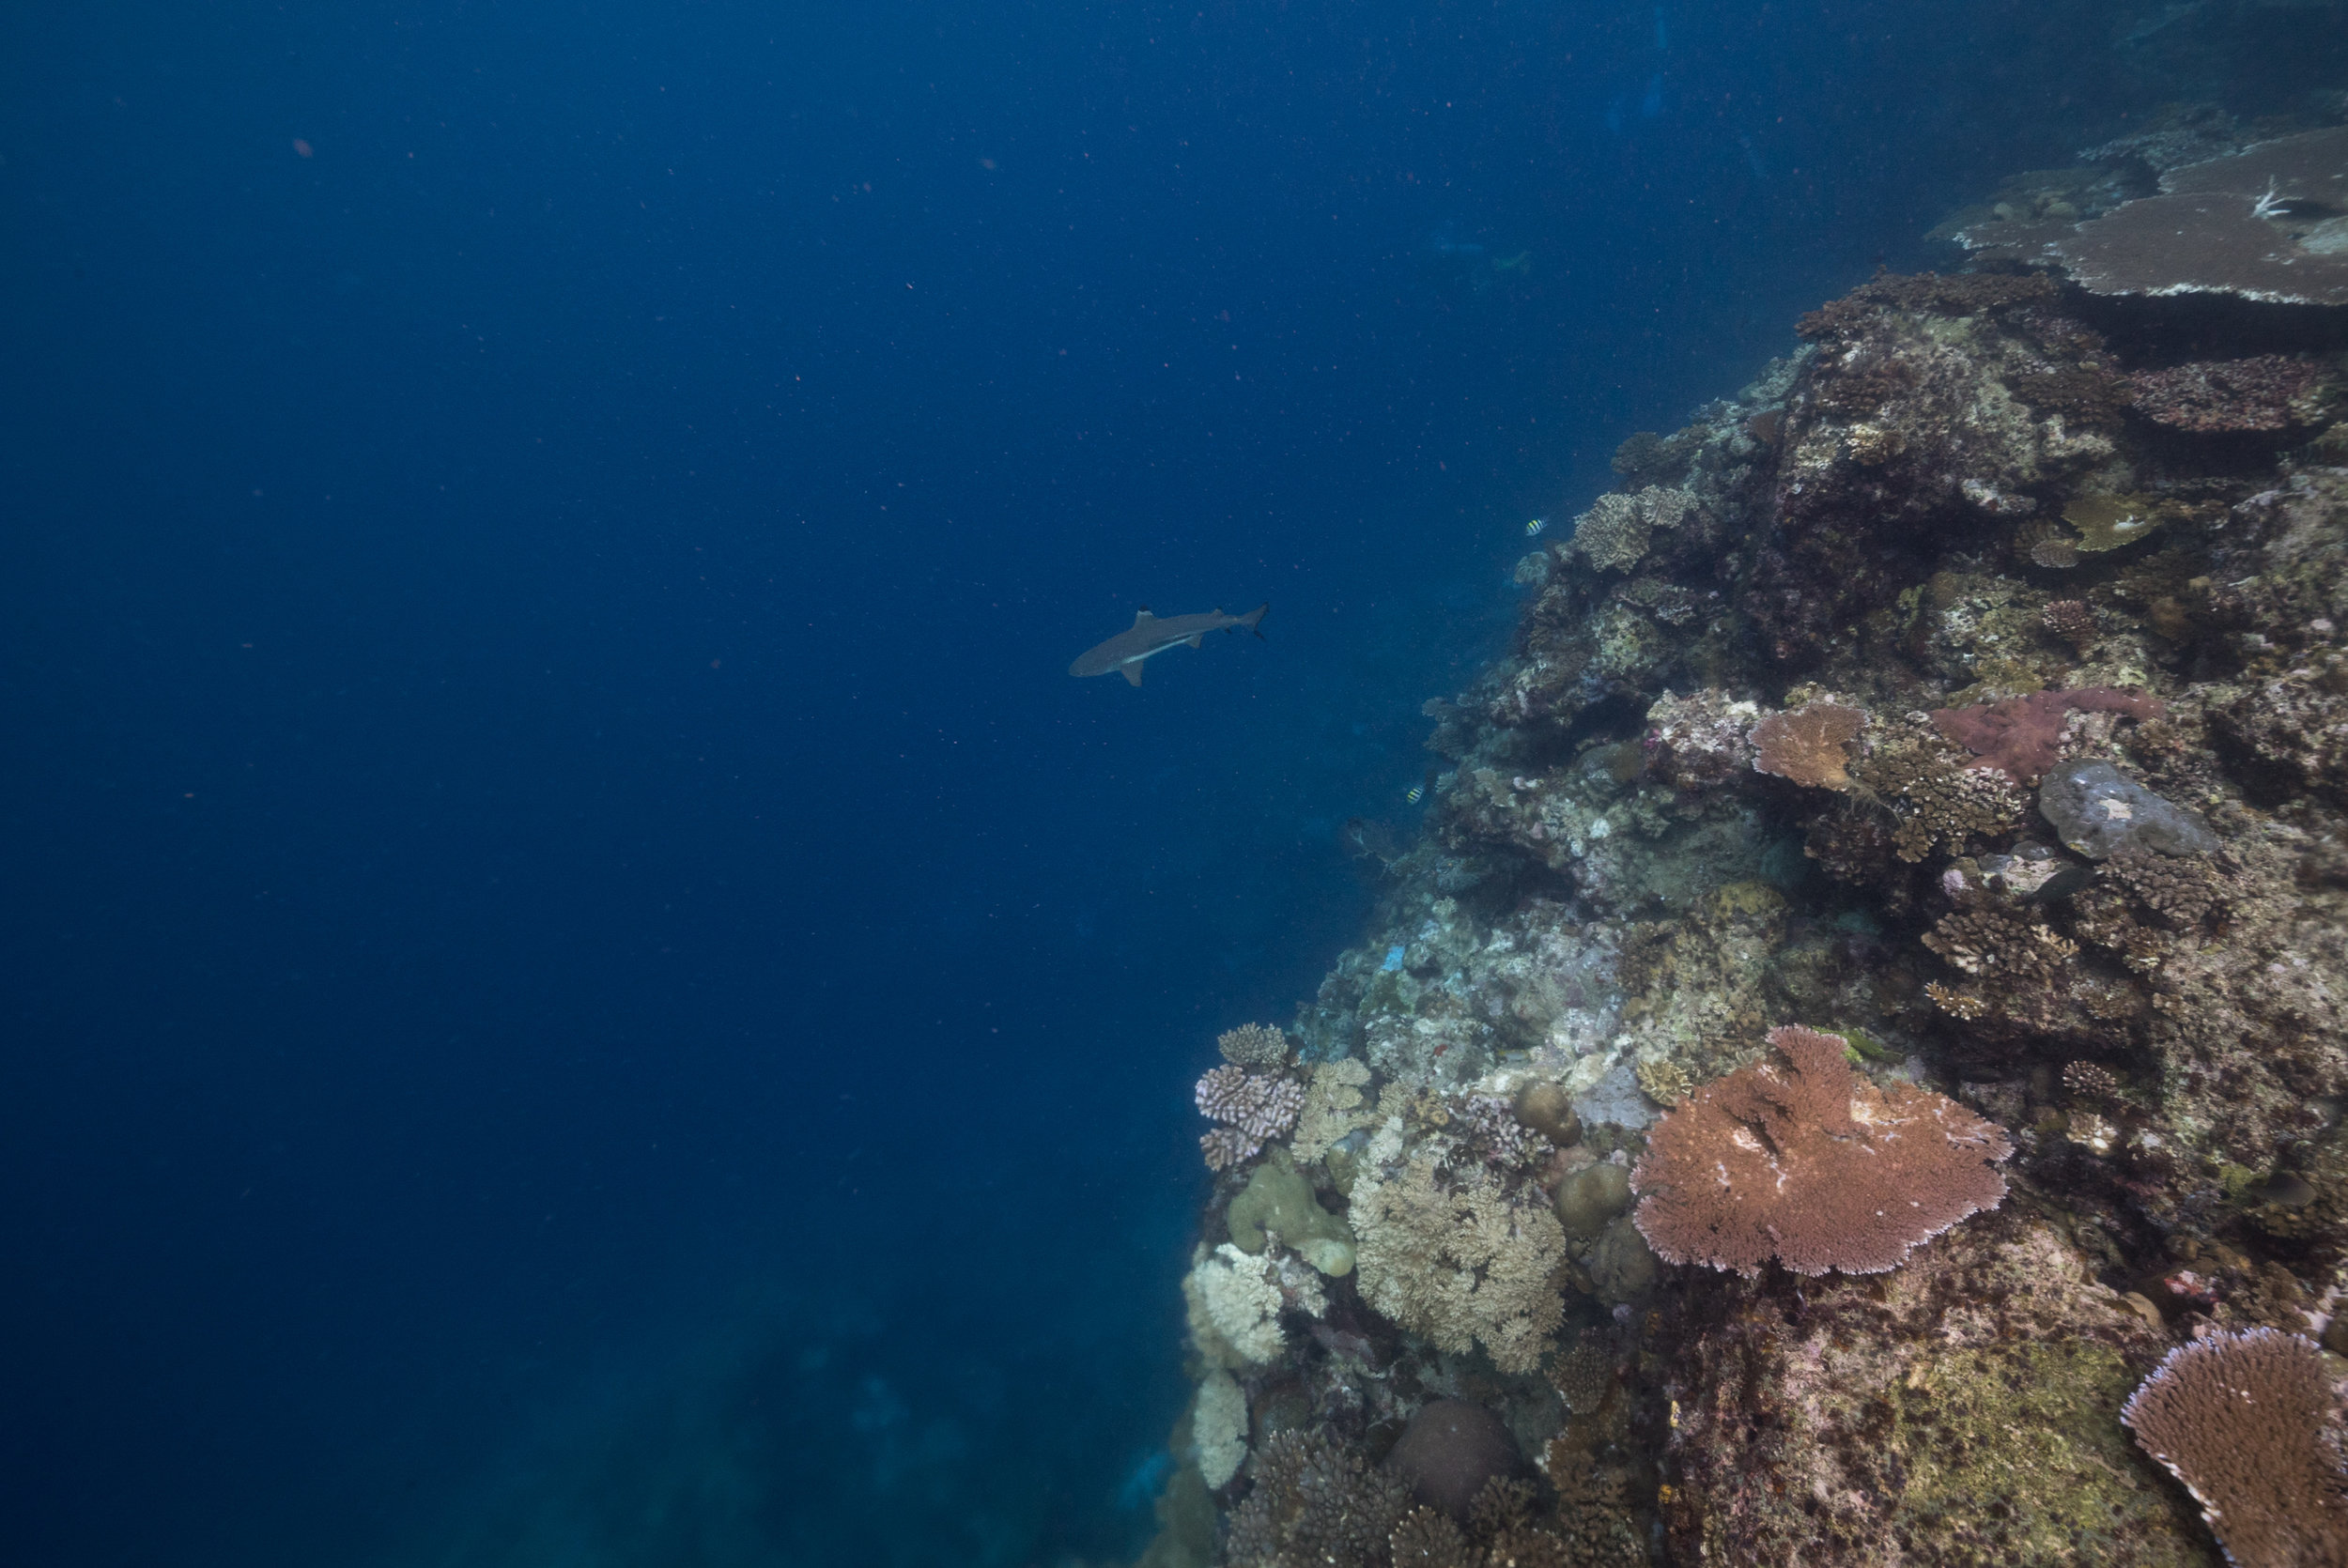 A black tip reef shark patrolling the depths of a reef.